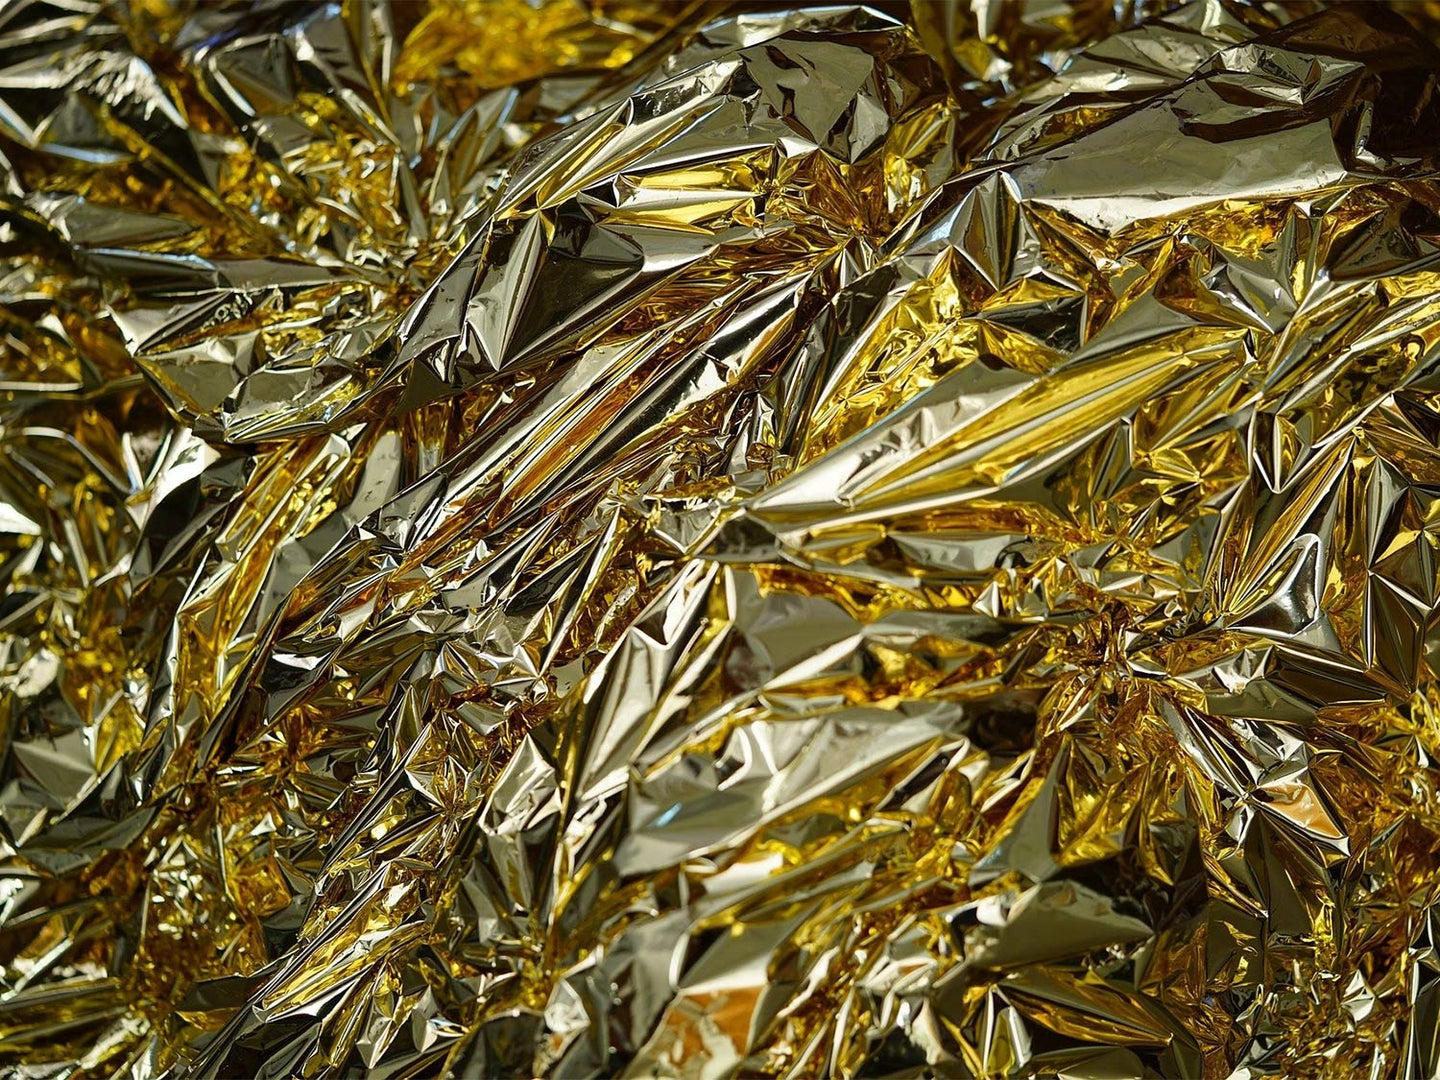 A gold-colored mylar emergency blanket.